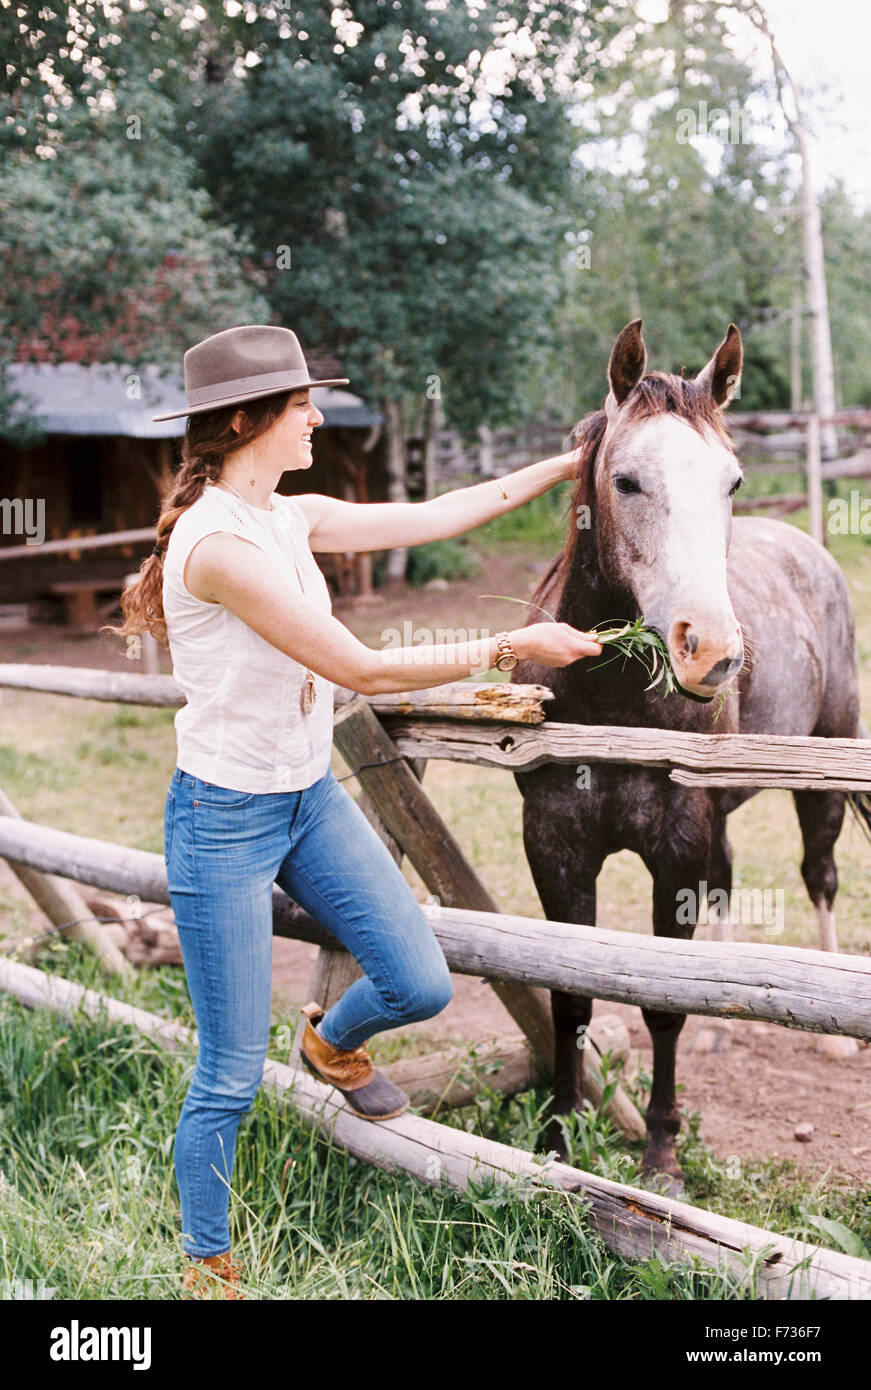 Woman feeding a horse in a paddock on a ranch. - Stock Image